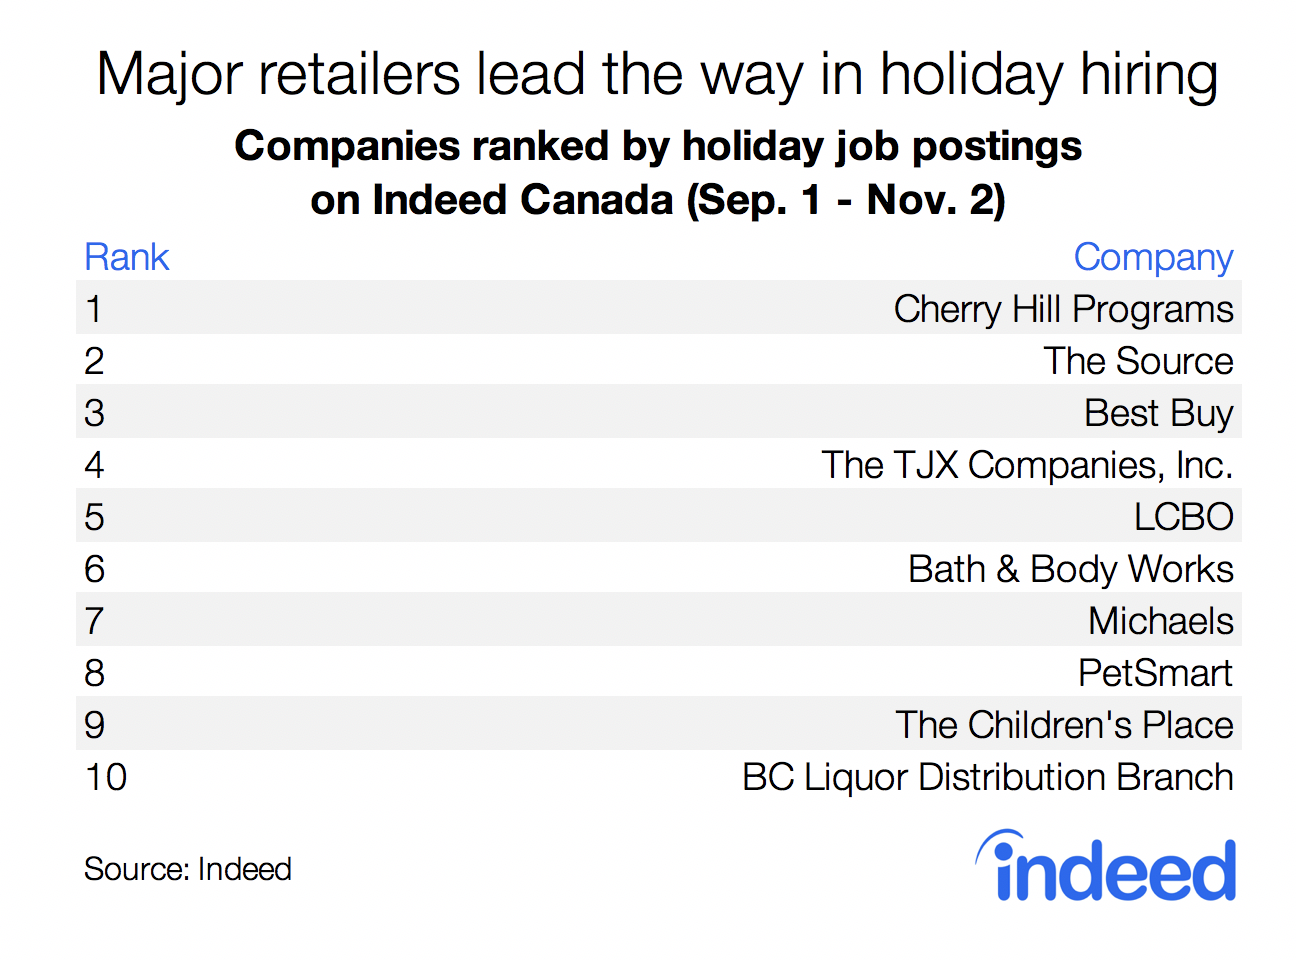 Table showing major Canadian retailers who are leading the way in holiday hiring.